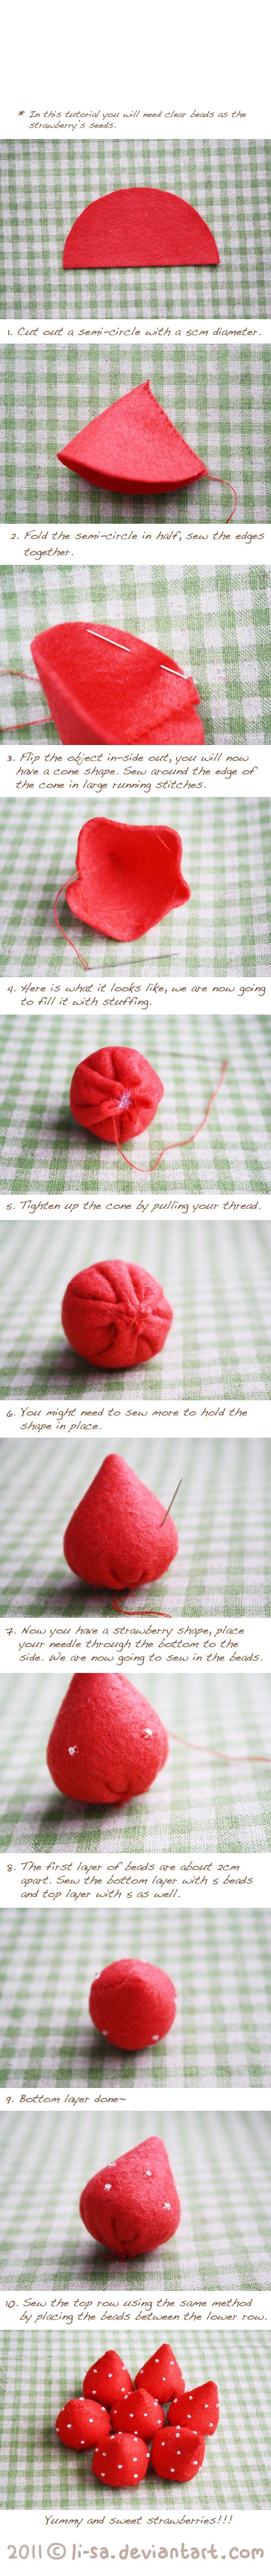 Felt cake tutorial- strawberry by li-sa.deviantart.com on @deviantART